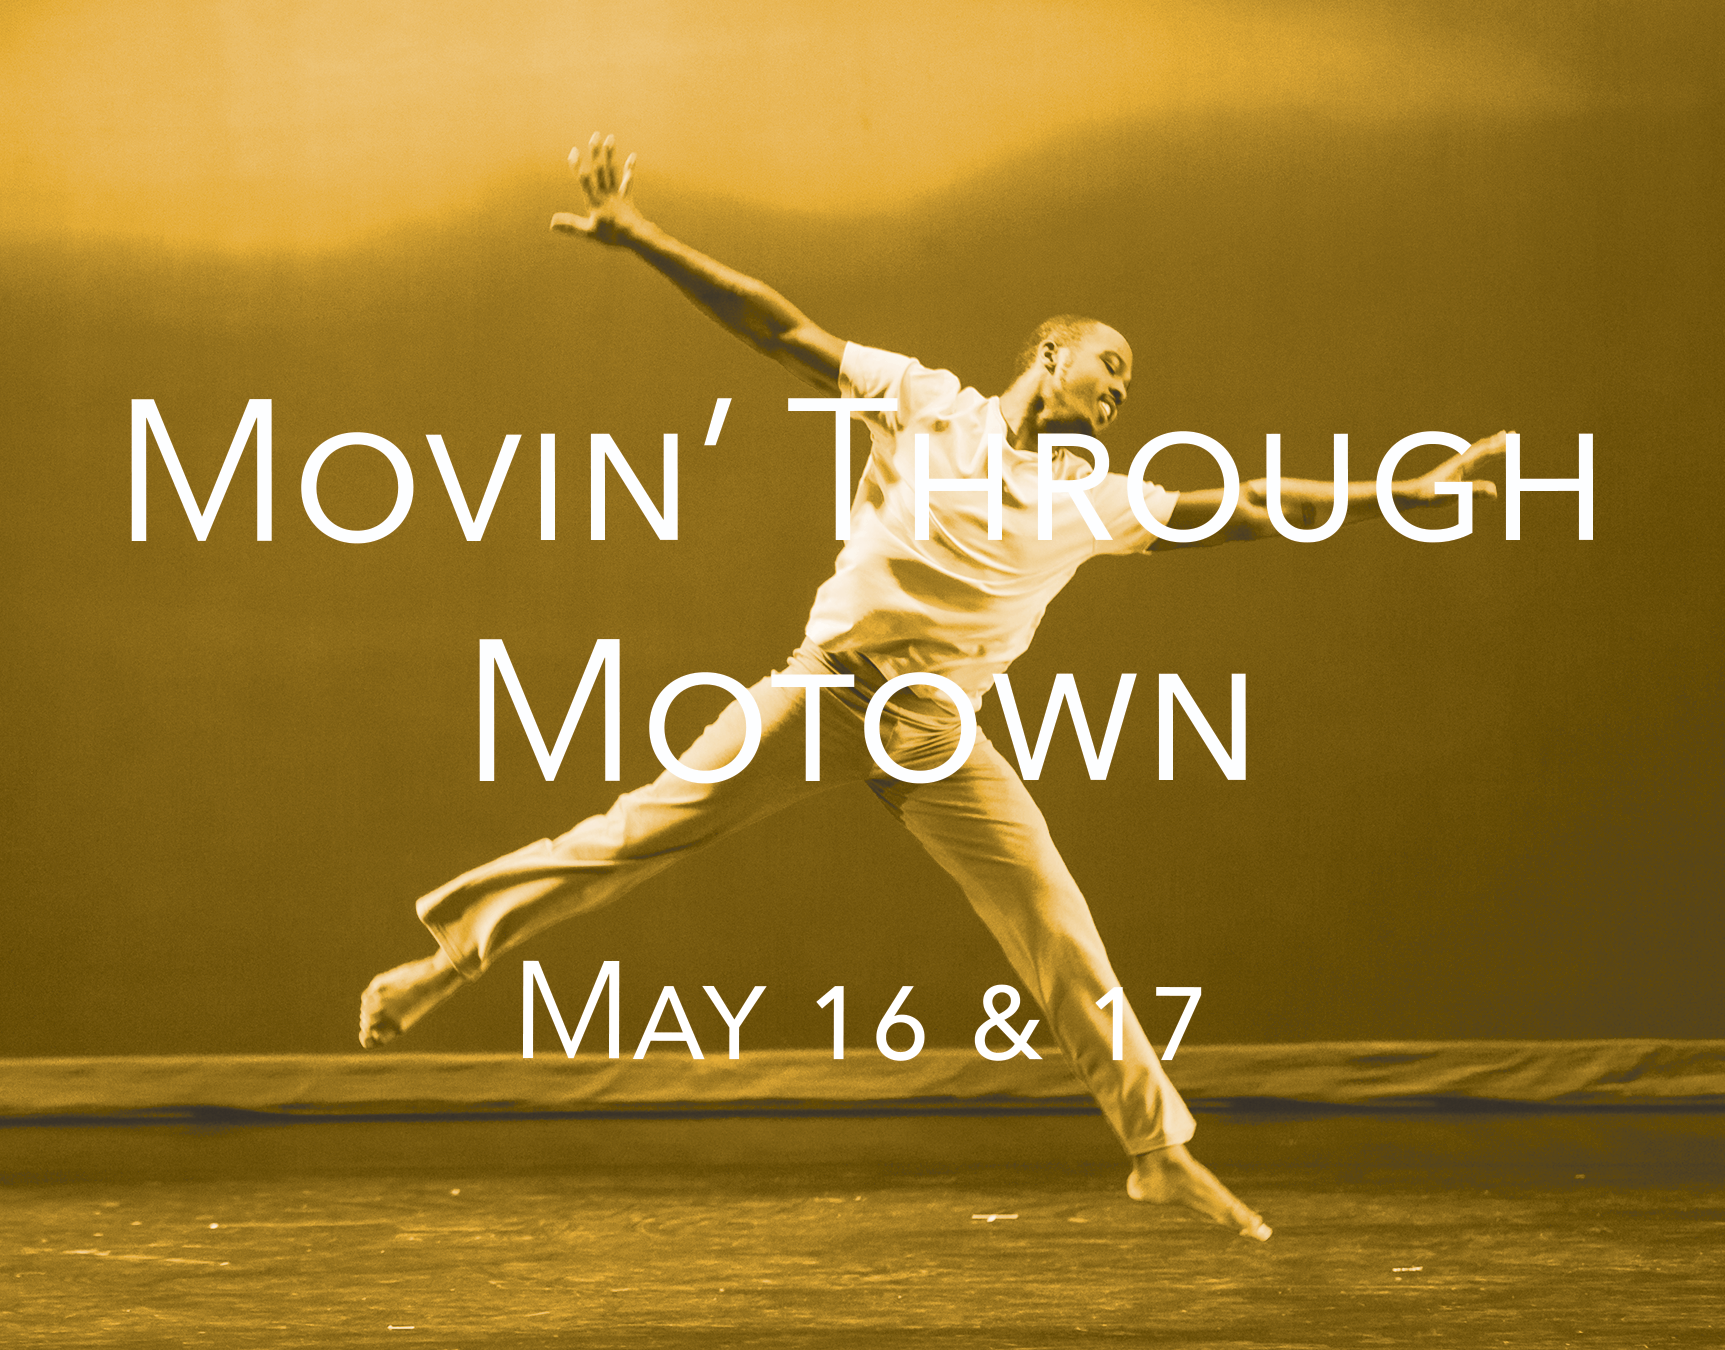 Movin' Through Motown - Saturday, May 16 | 1p, 1:30p, 2p, 2:30pSaturday, May 16 | 7p, 7:30p, 8p, 8:30pSunday, May 17 | 1p, 1:30p, 2p, 2:30pGet your groove on as you explore the Motown Mansion made famous by Berry Gordy courtesy of present homeowner, Alan Brown! The fun-loving and engaging EDD dancers take the audience on a musical road trip through the mansion with traveling dance vignettes featuring the energy and soul, gospel and grit, that made the Motor City famous. Follow that unmistakable Motown sound as it leads you from room to room!$35 General Admission$30 Senior (Ages 62+)$30 StudentMotown Mansion918 W Boston Blvd, Detroit, MI 48202